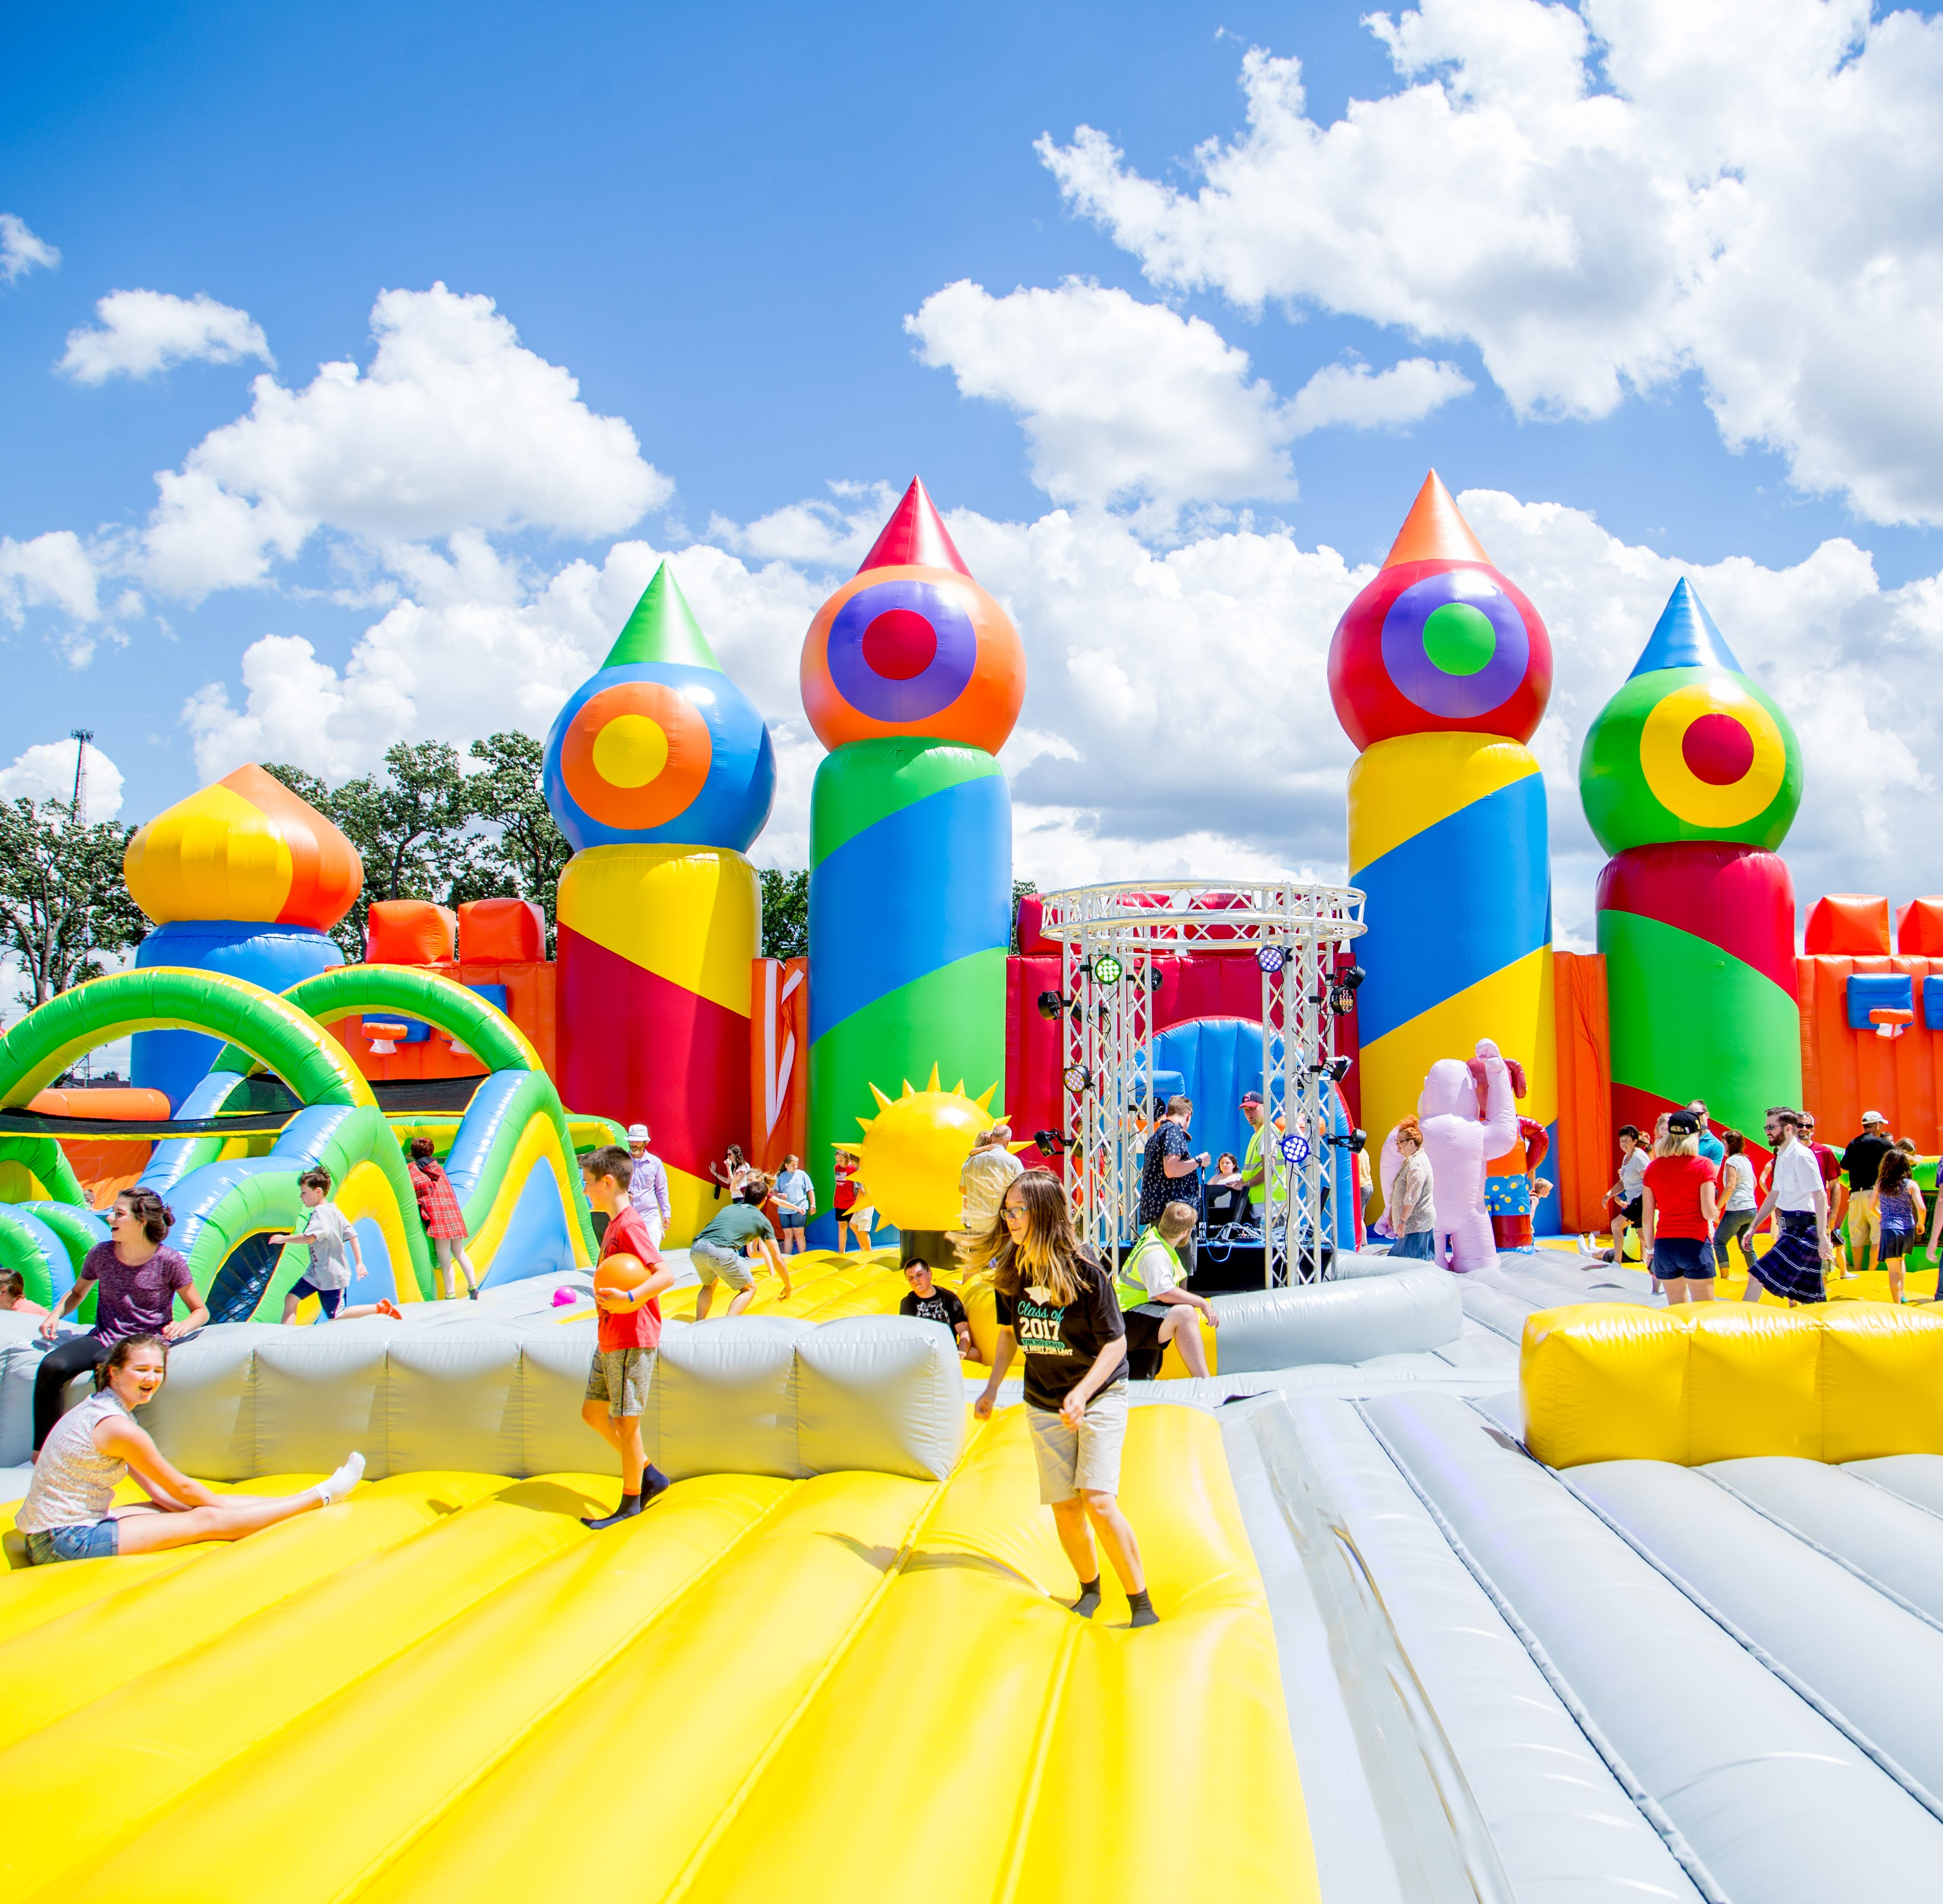 World's biggest bounce house coming to Ohio